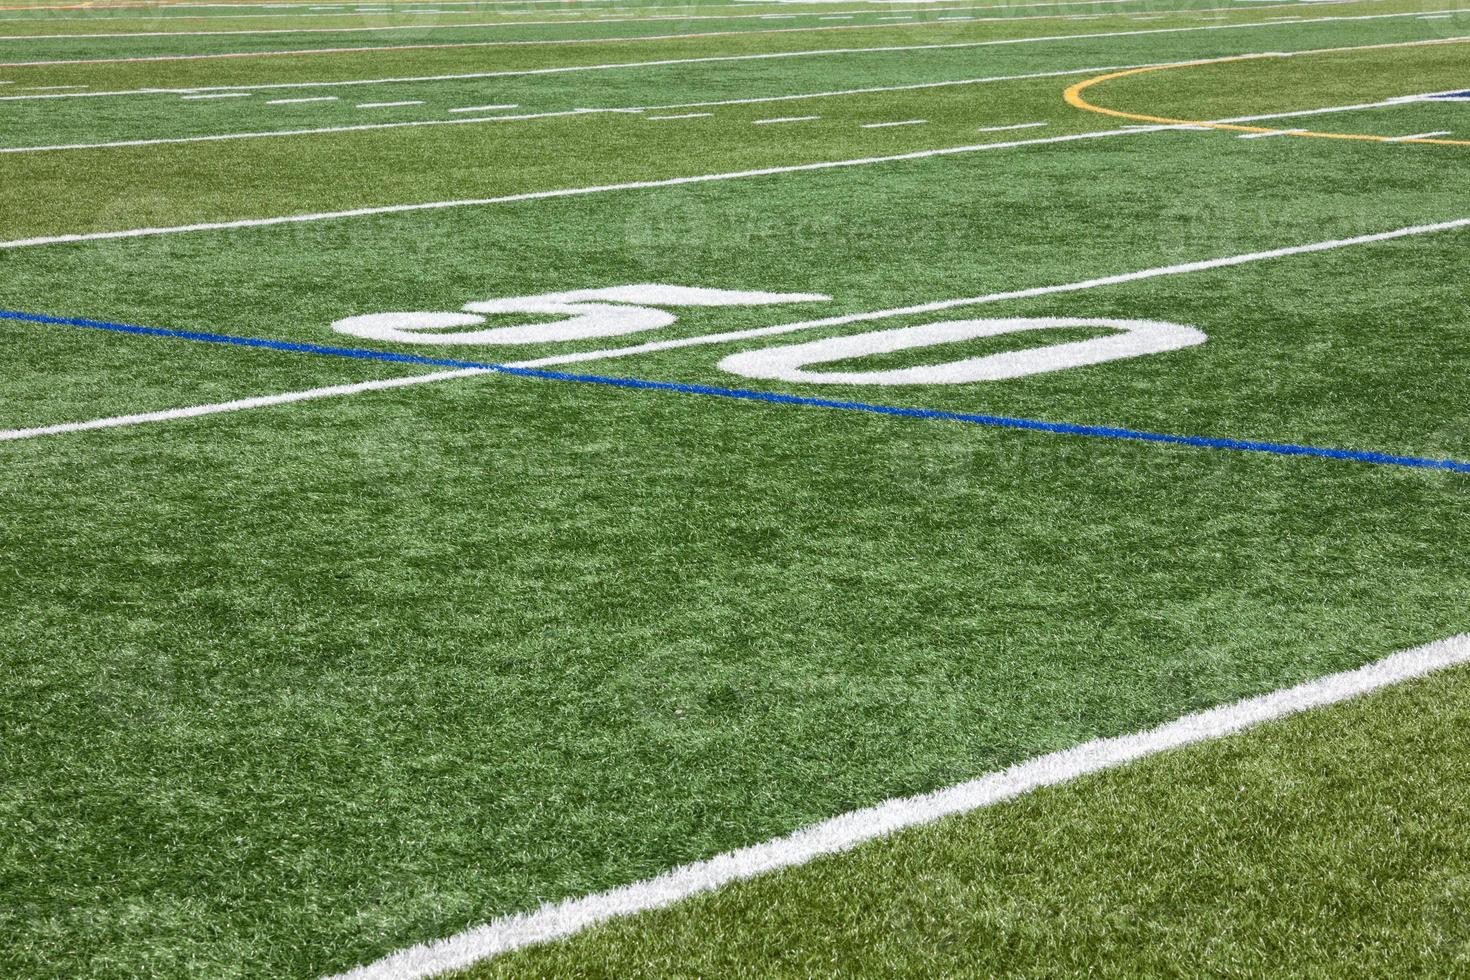 Artificial Turf & Fifty Yard Line photo